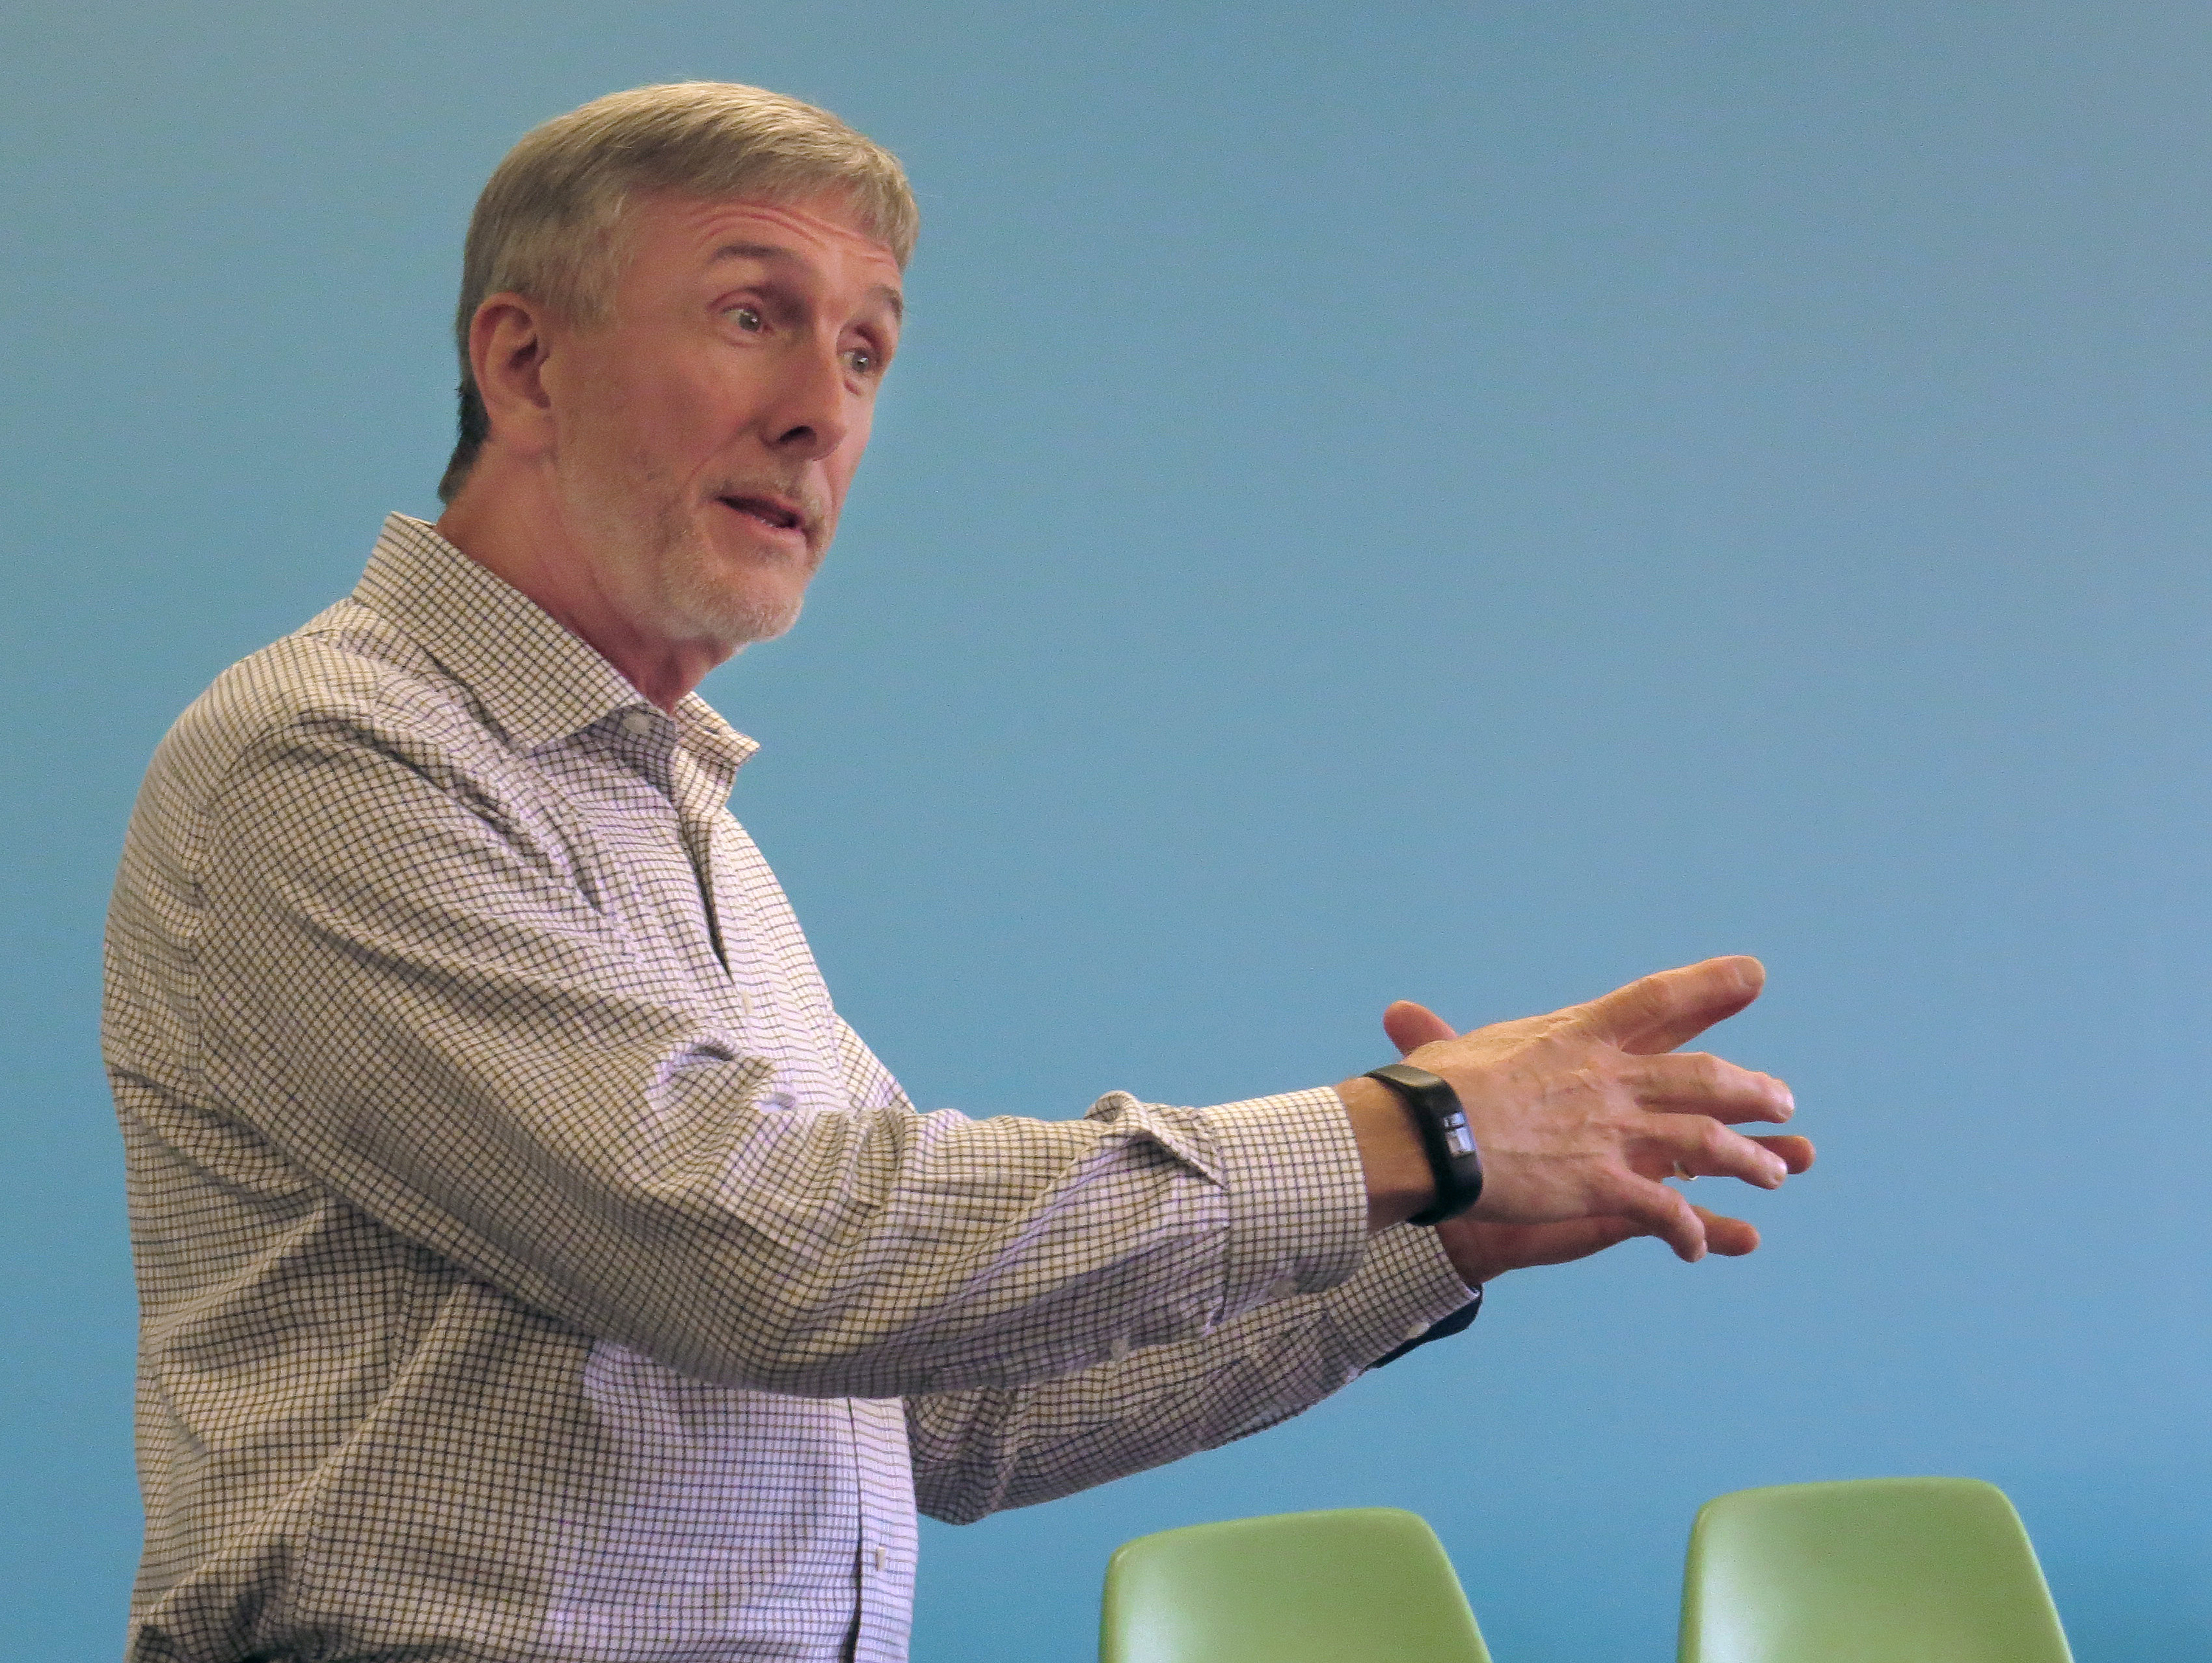 Jonathan Bell speaks on United Methodist microfinance efforts at the Beyond These Walls mission conference. Photo by Sam Hodges, UMNS.